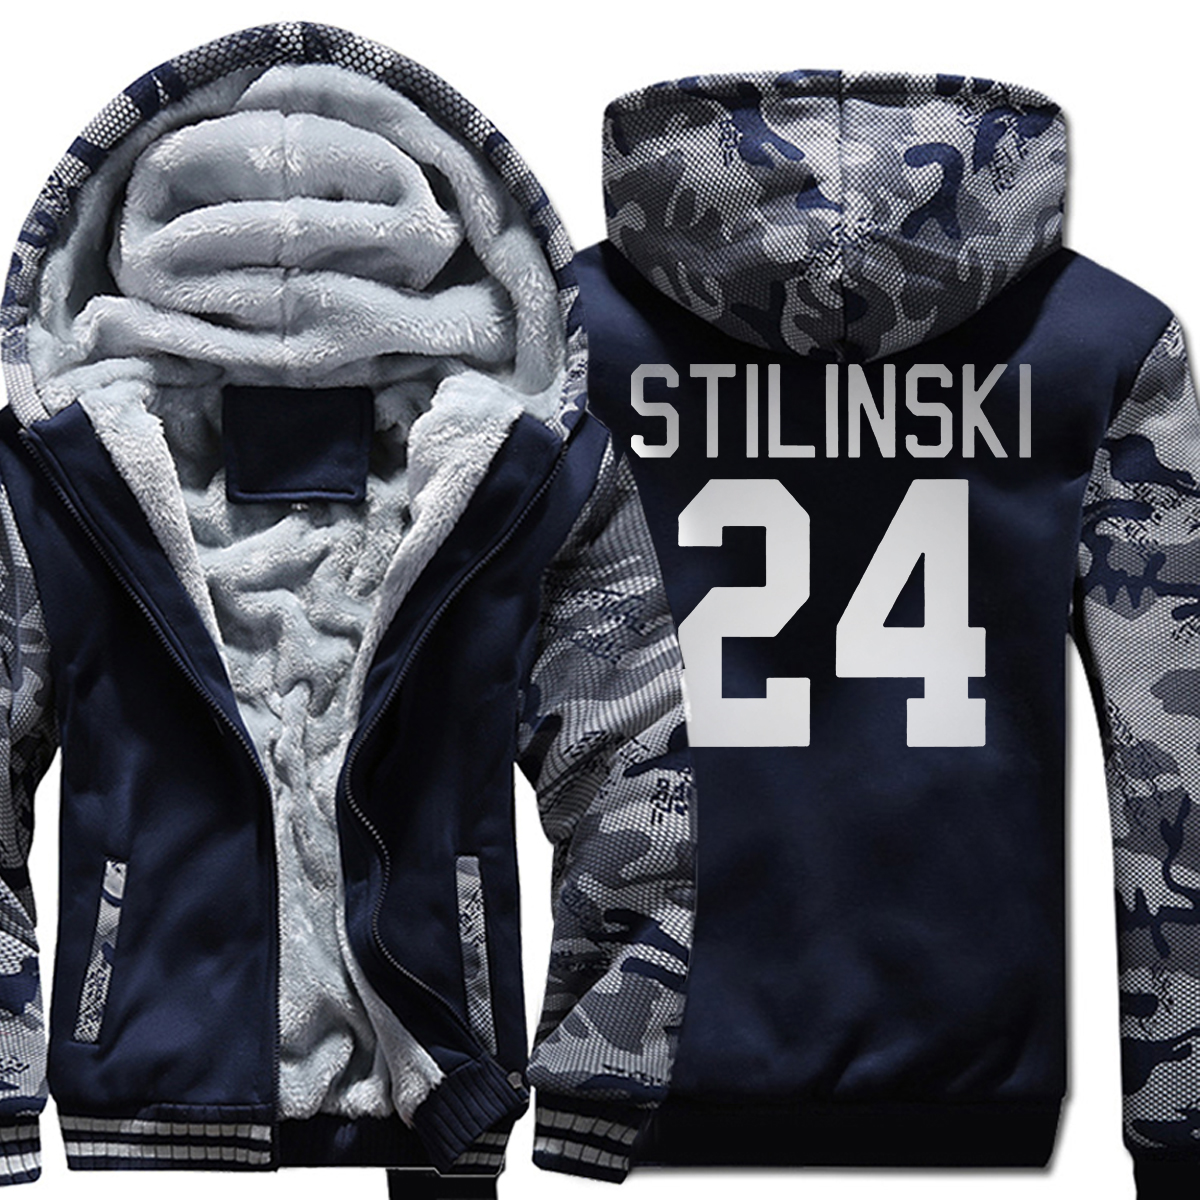 hot sale 2019 winter warm fleece Stilinski 24 men hoodies Brand Clothing Stilinski 24 Jersey men sweatshirts high quality coat